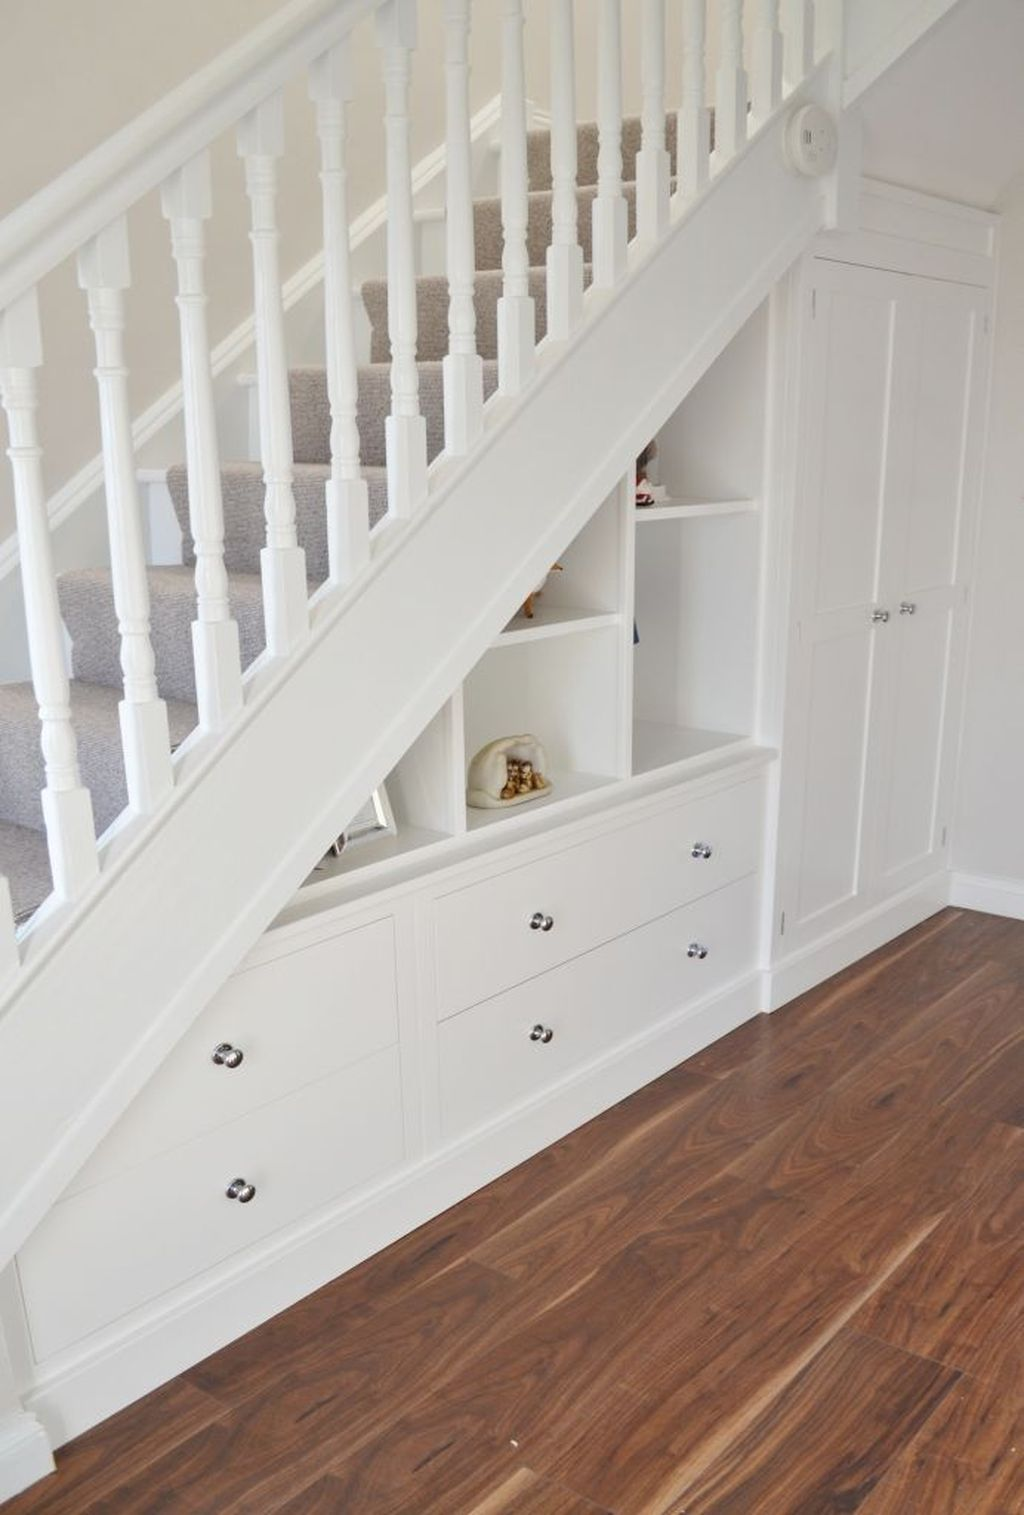 20 Awesome Shoe Rack Ideas On Stairs For You Stairs And Space